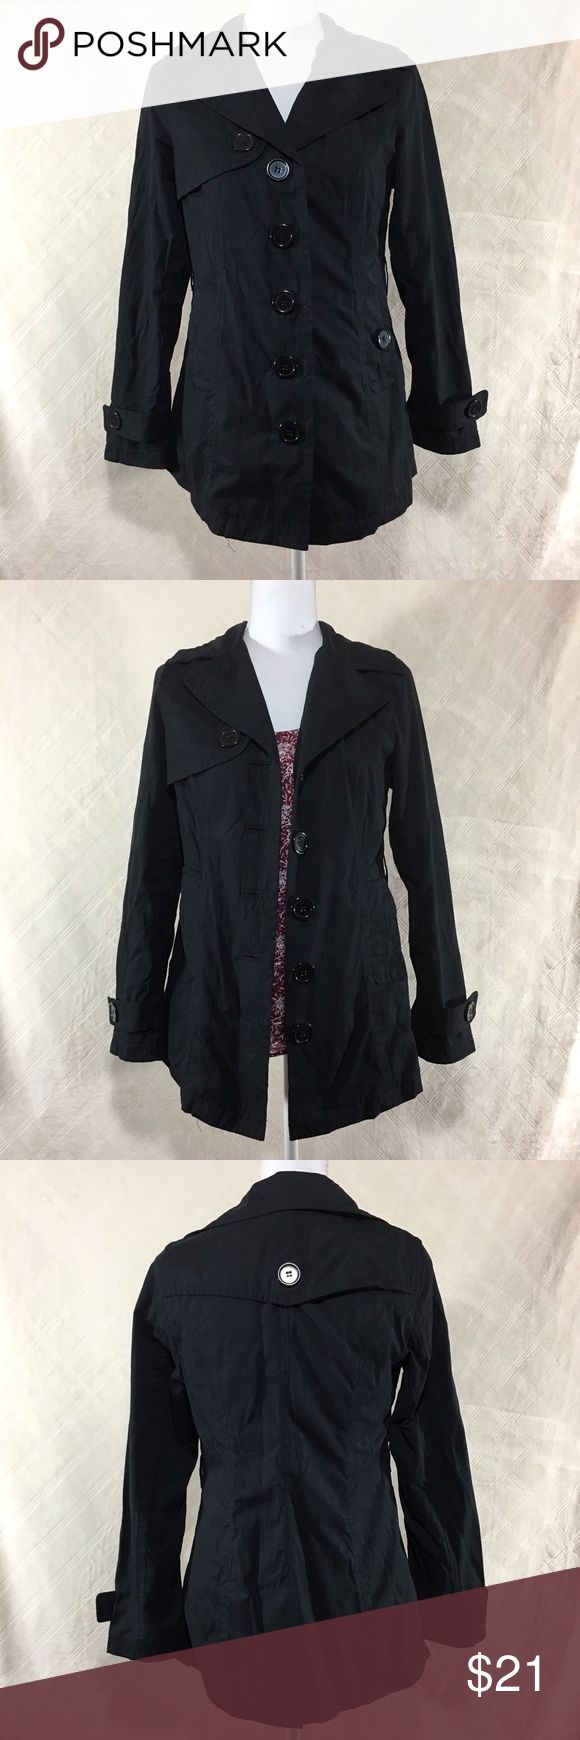 Black lightweight trench coat Black lightweight trench coat. Buttons up, two pockets with buttons. Cute polka dot trim inside. Jou Jou size small. 70% cotton 30% polyester. Jou Jou Jackets & Coats Trench Coats